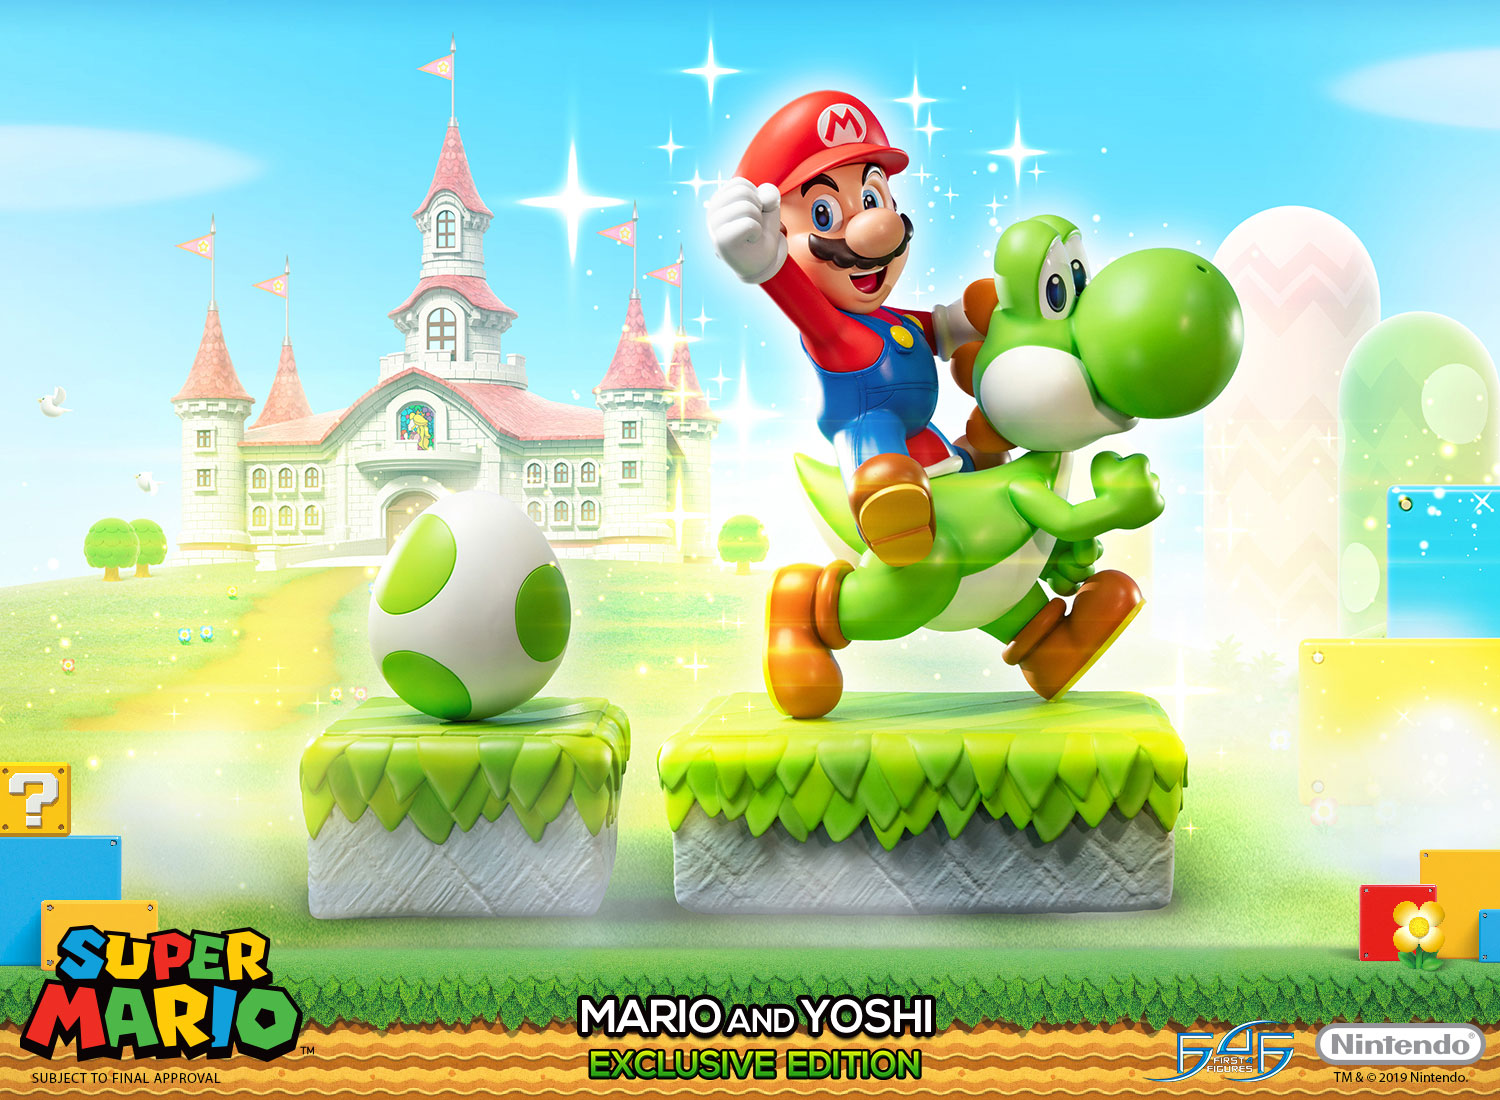 Mario and Yoshi (Exclusive Edition)